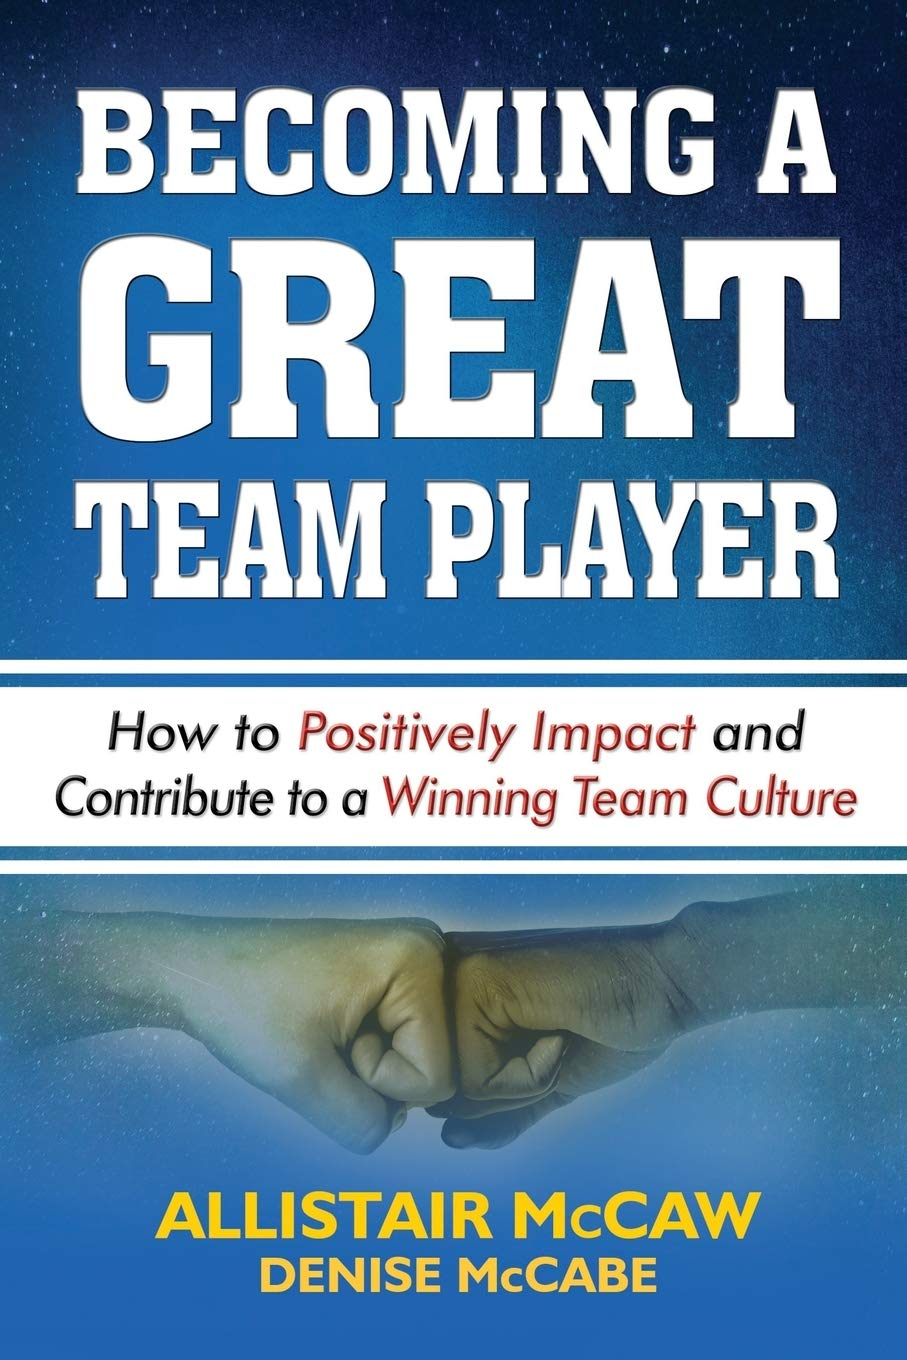 Download BECOMING A GREAT TEAM PLAYER: How To Positively Impact And Contribute To A Winning Team Culture 